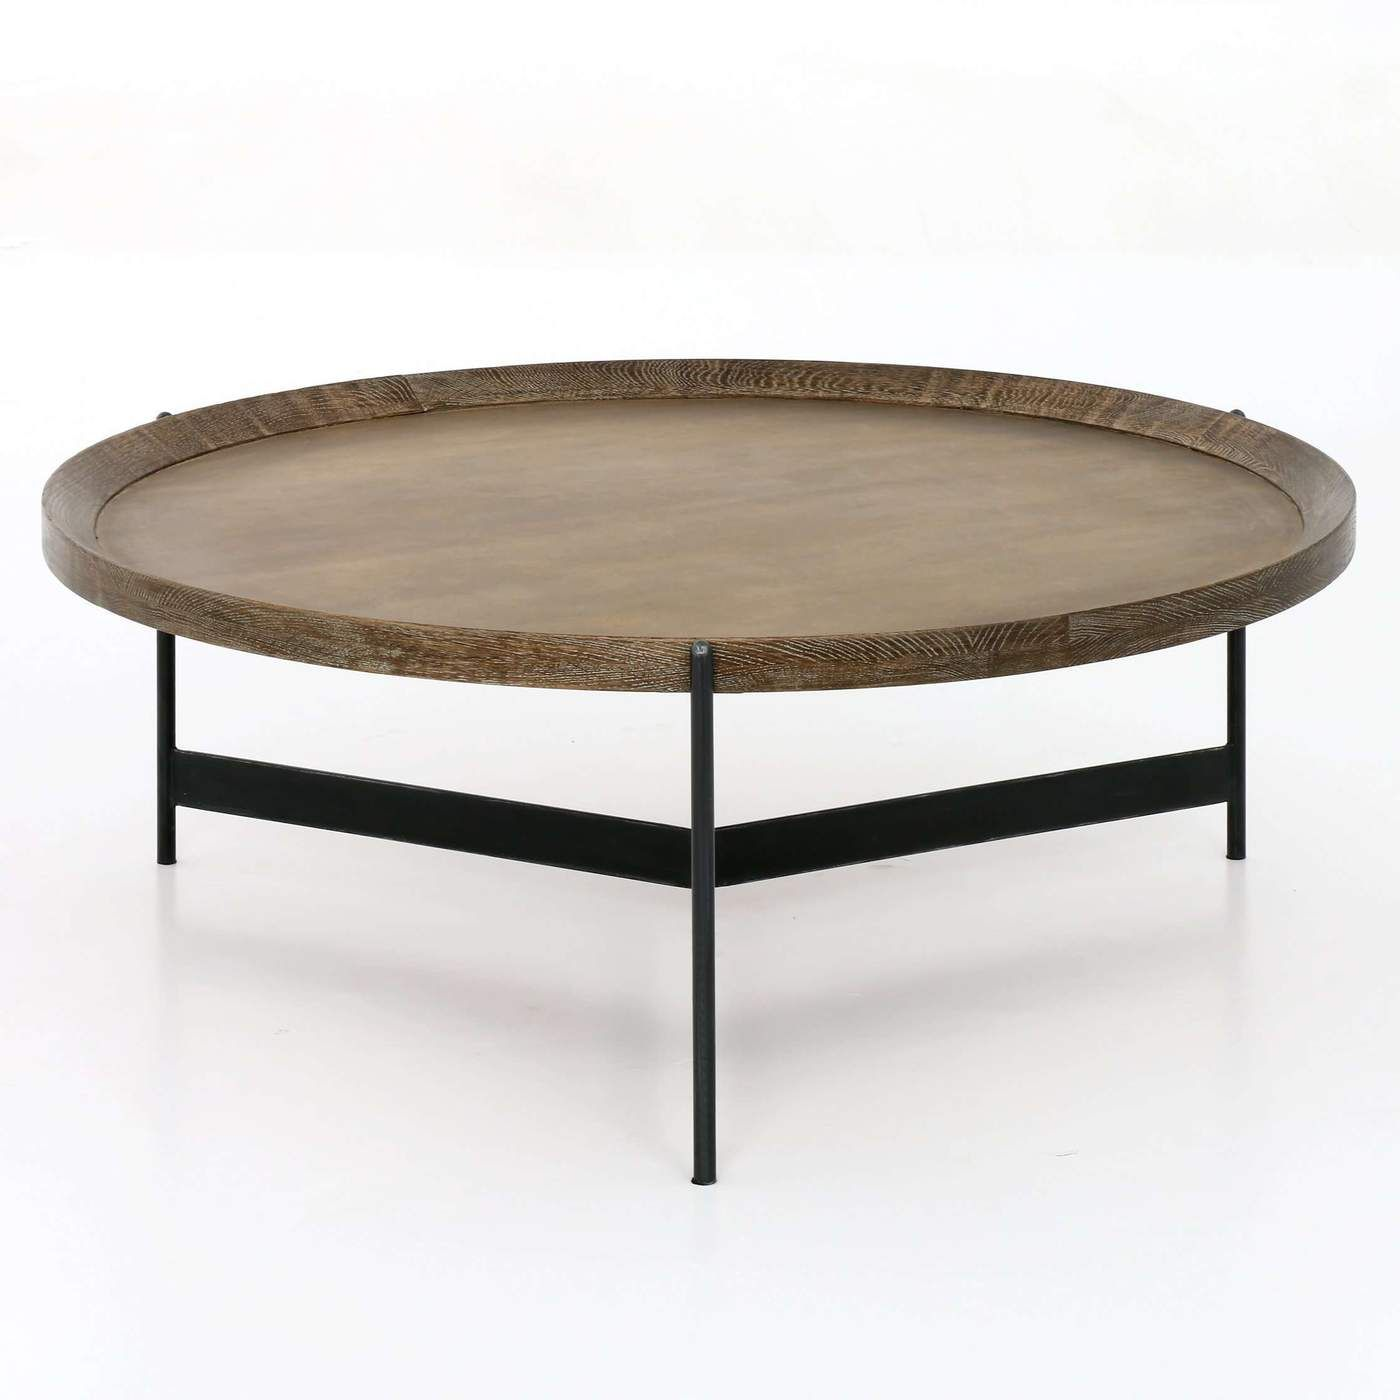 Nathaniel Coffee Table Coffee Table Pottery Barn Coffee Table Wood Coffee Table [ 1400 x 1400 Pixel ]